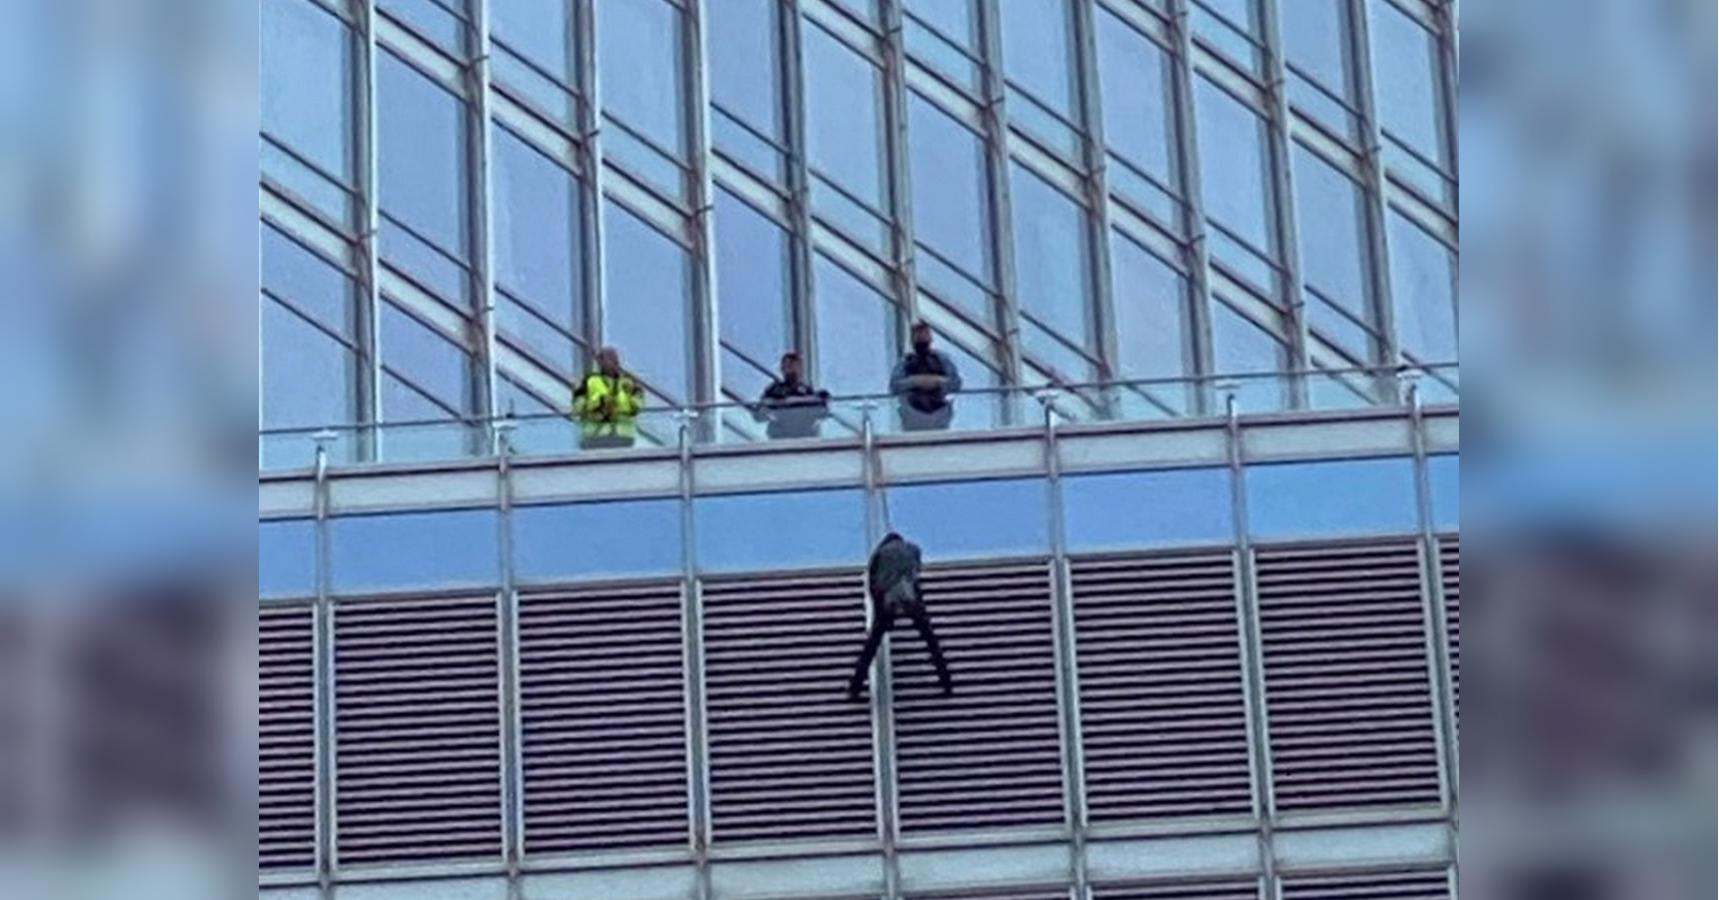 Man dangling from Chicago's Trump Tower taken into custody